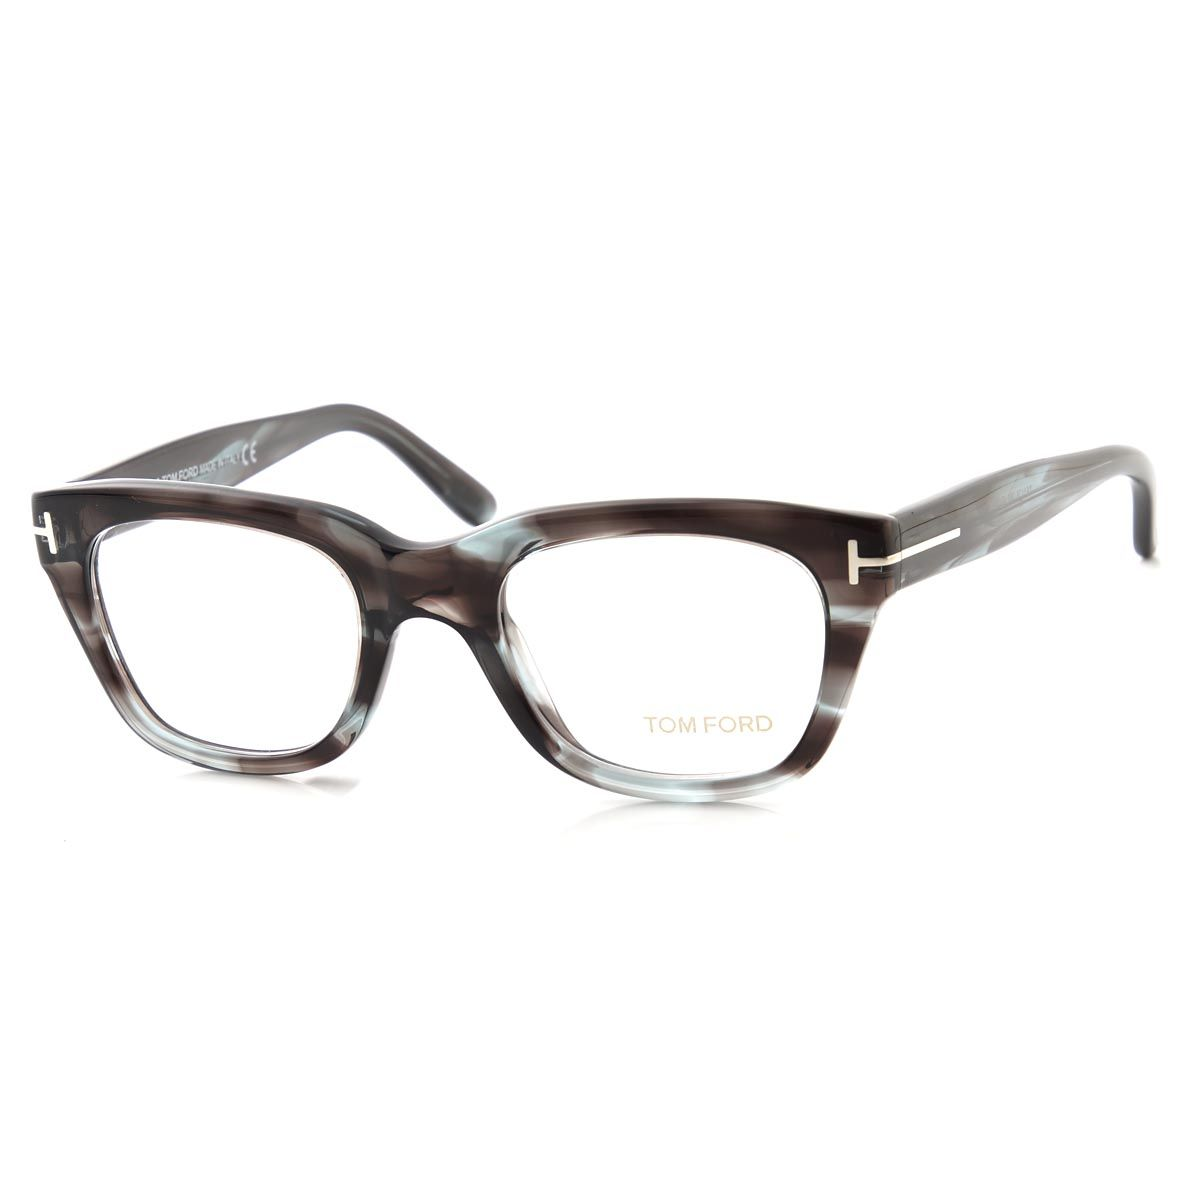 1ec9fc33db4 Rakuten Global Market  TOM FORD glasses   soft square and gray  tortoiseshell pattern grey series ft5178 089 mens